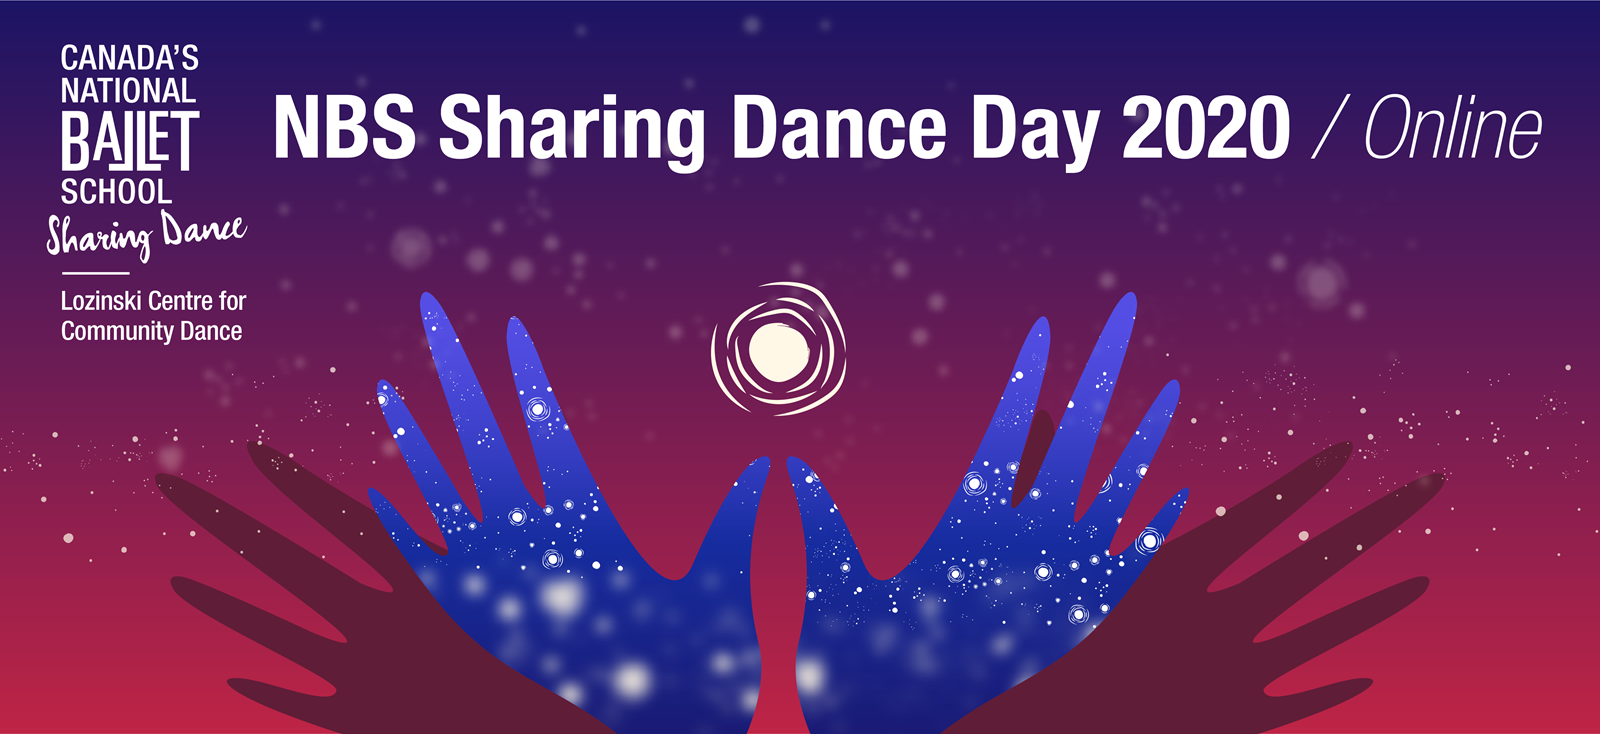 NBS sharing dance day